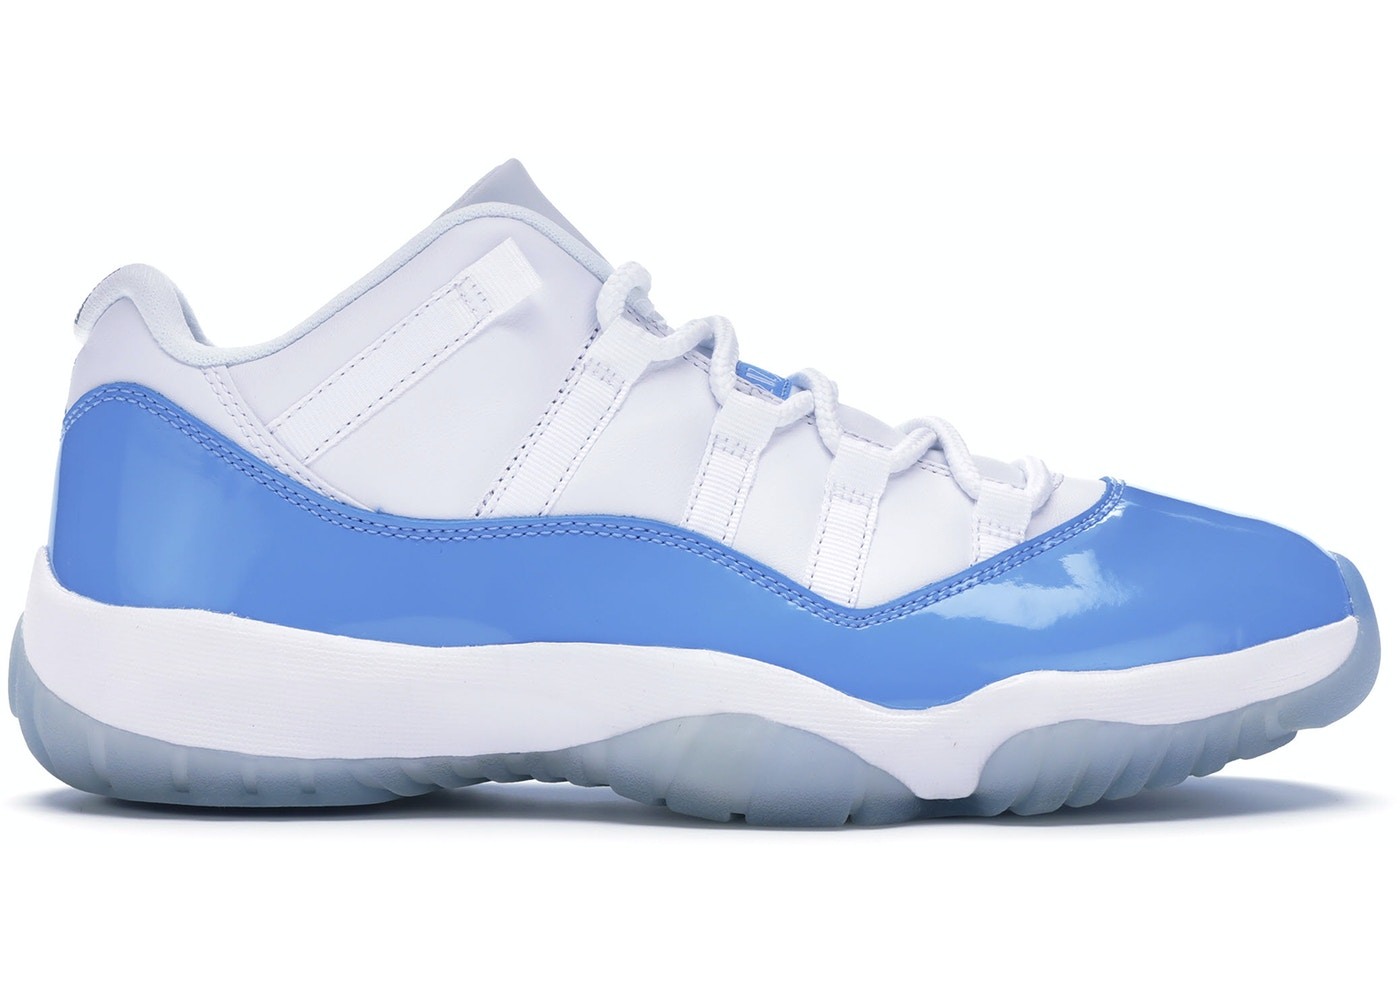 Jordan 11 Retro Low University Blue (2017) - 528895-106 5b3af669c